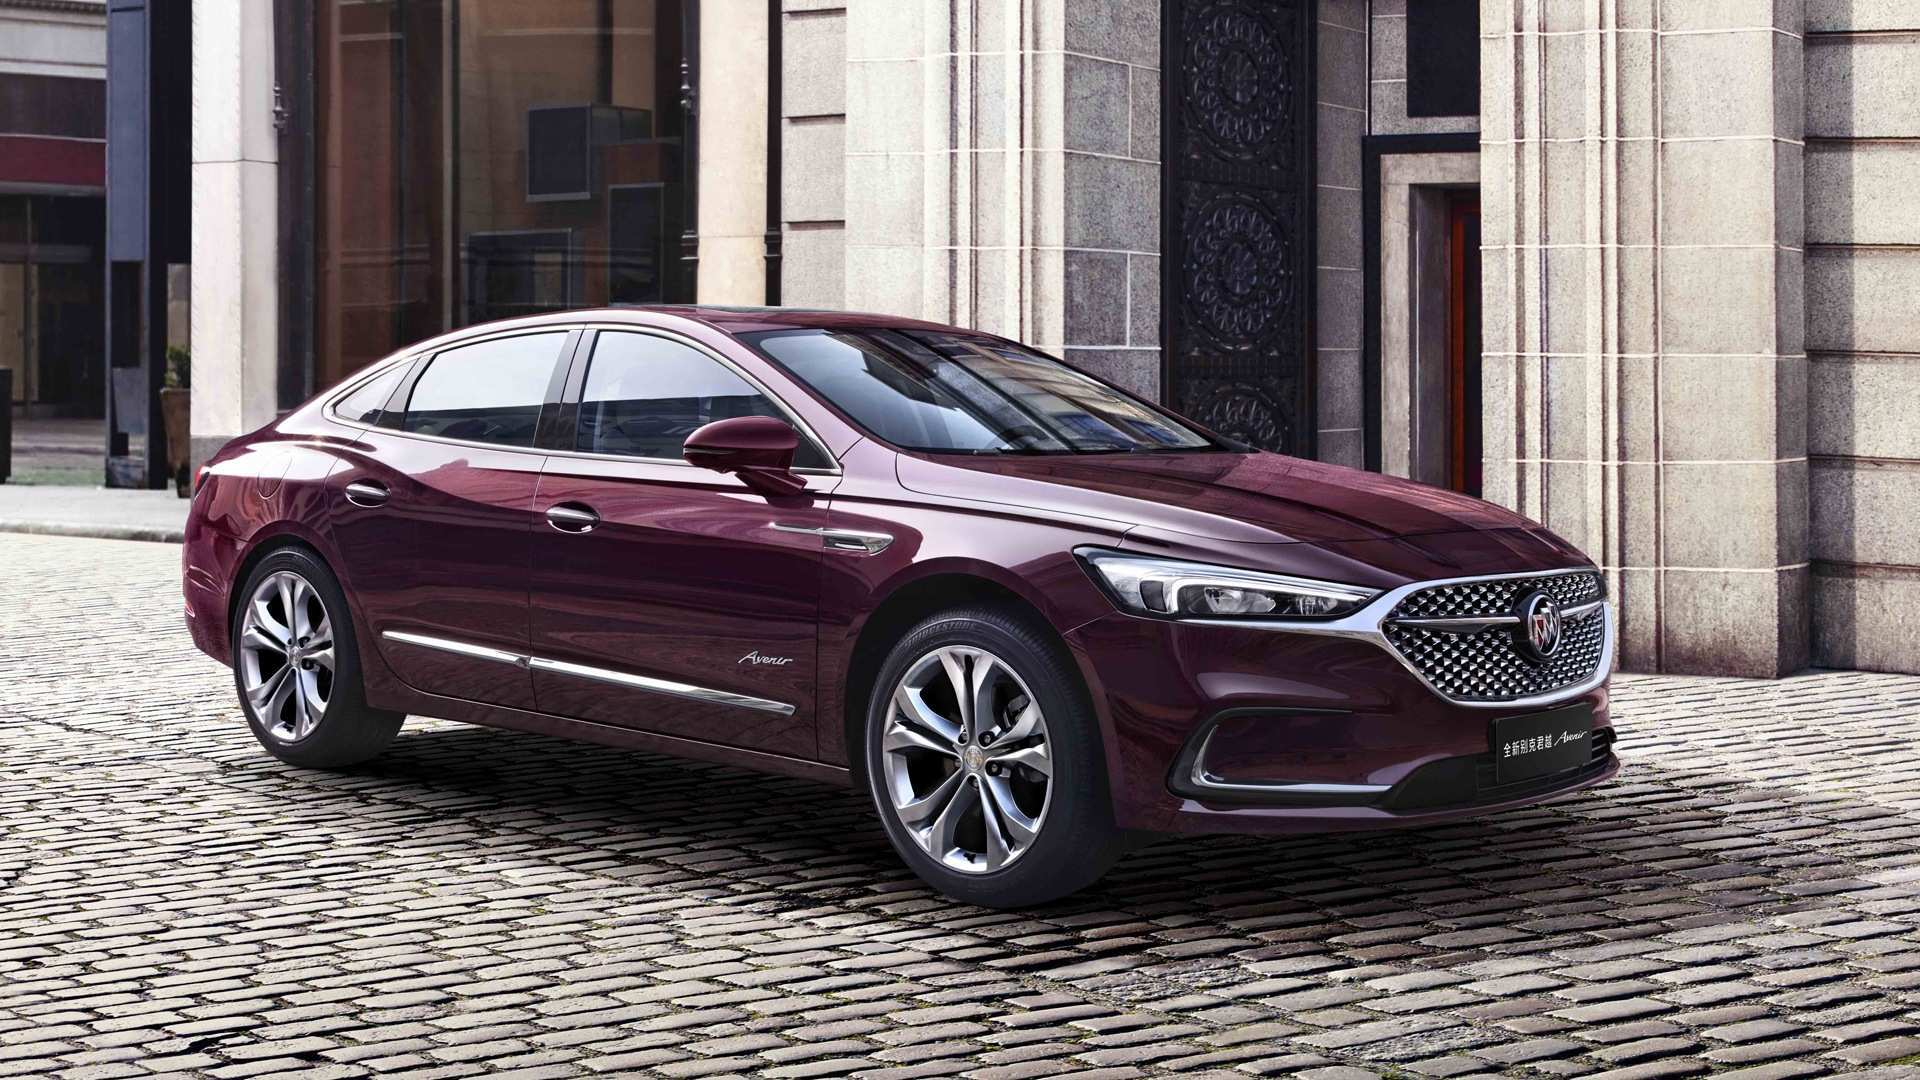 42 New 2020 Buick Vehicles Configurations